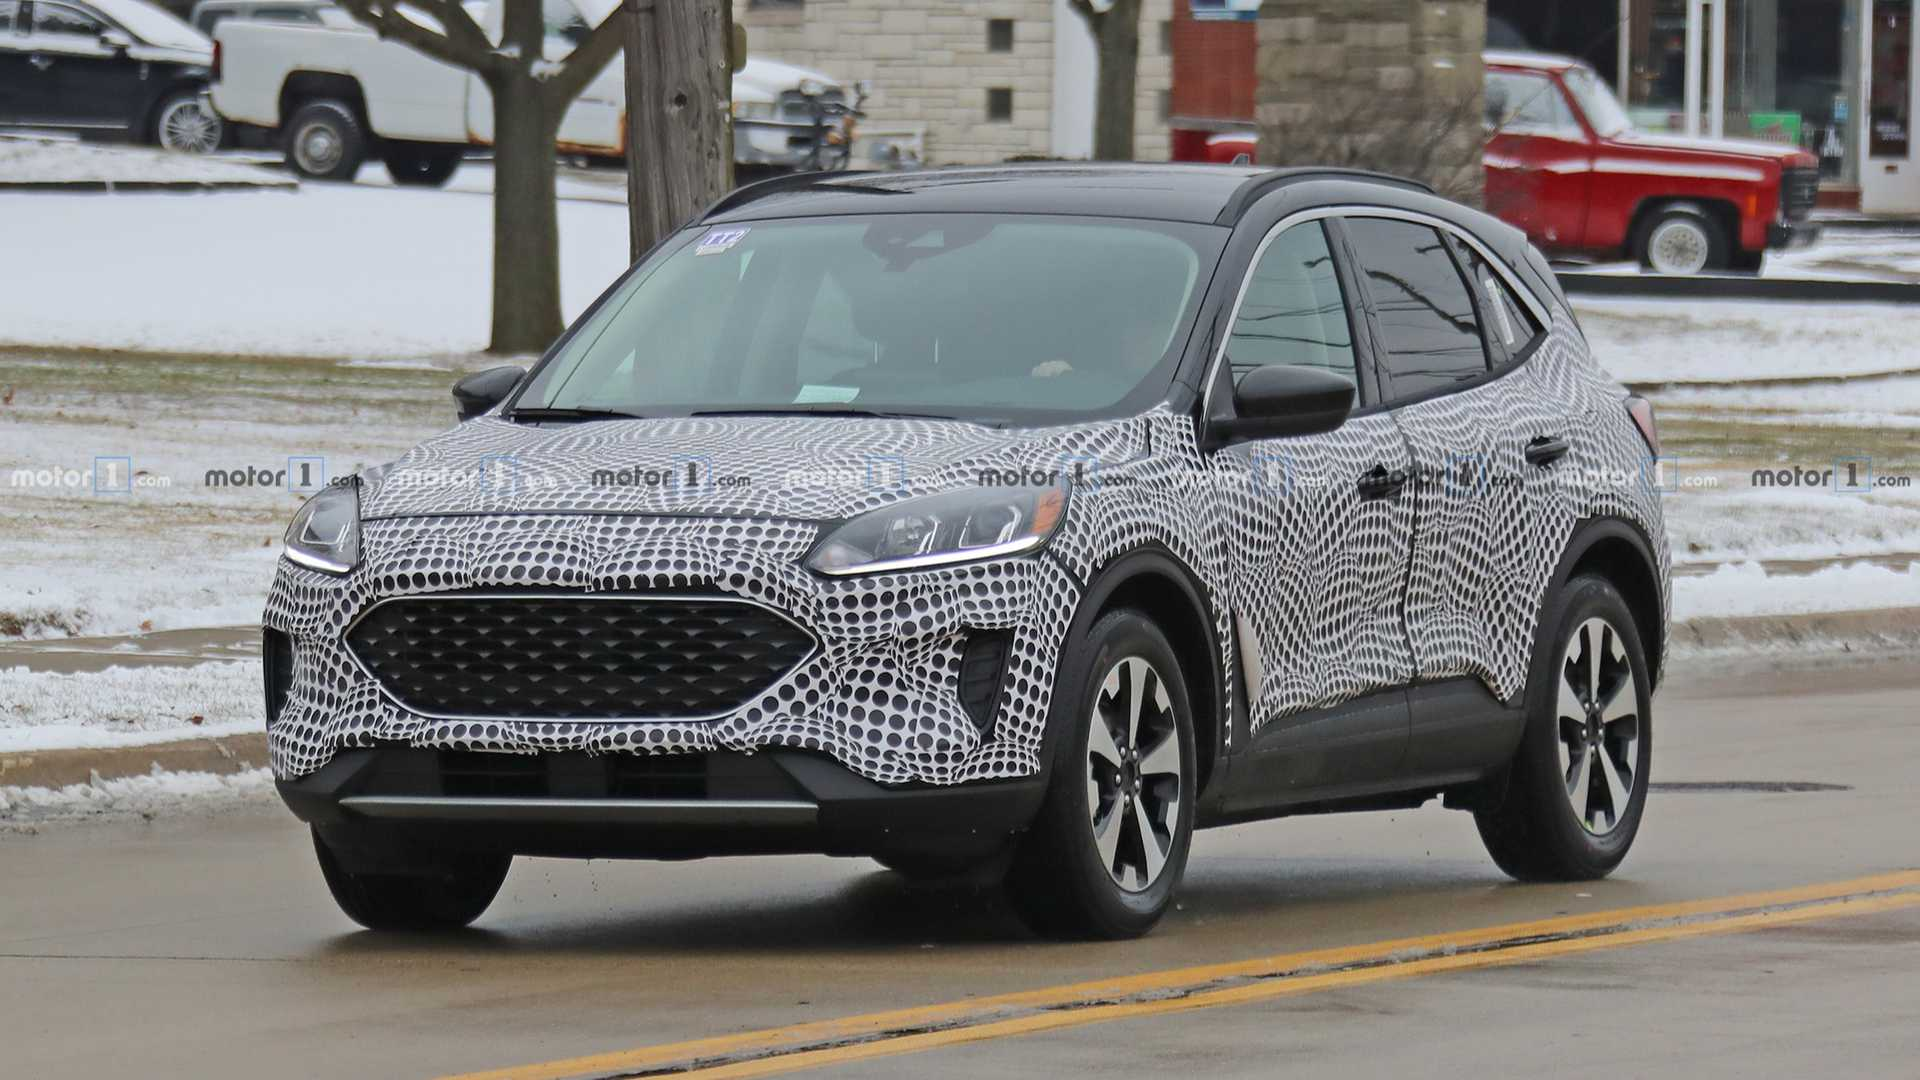 2020 Ford Escape Spy Photos, Pictures, Interior >> 2020 Ford Escape Spied Inside And Out Hybrid Confirmed